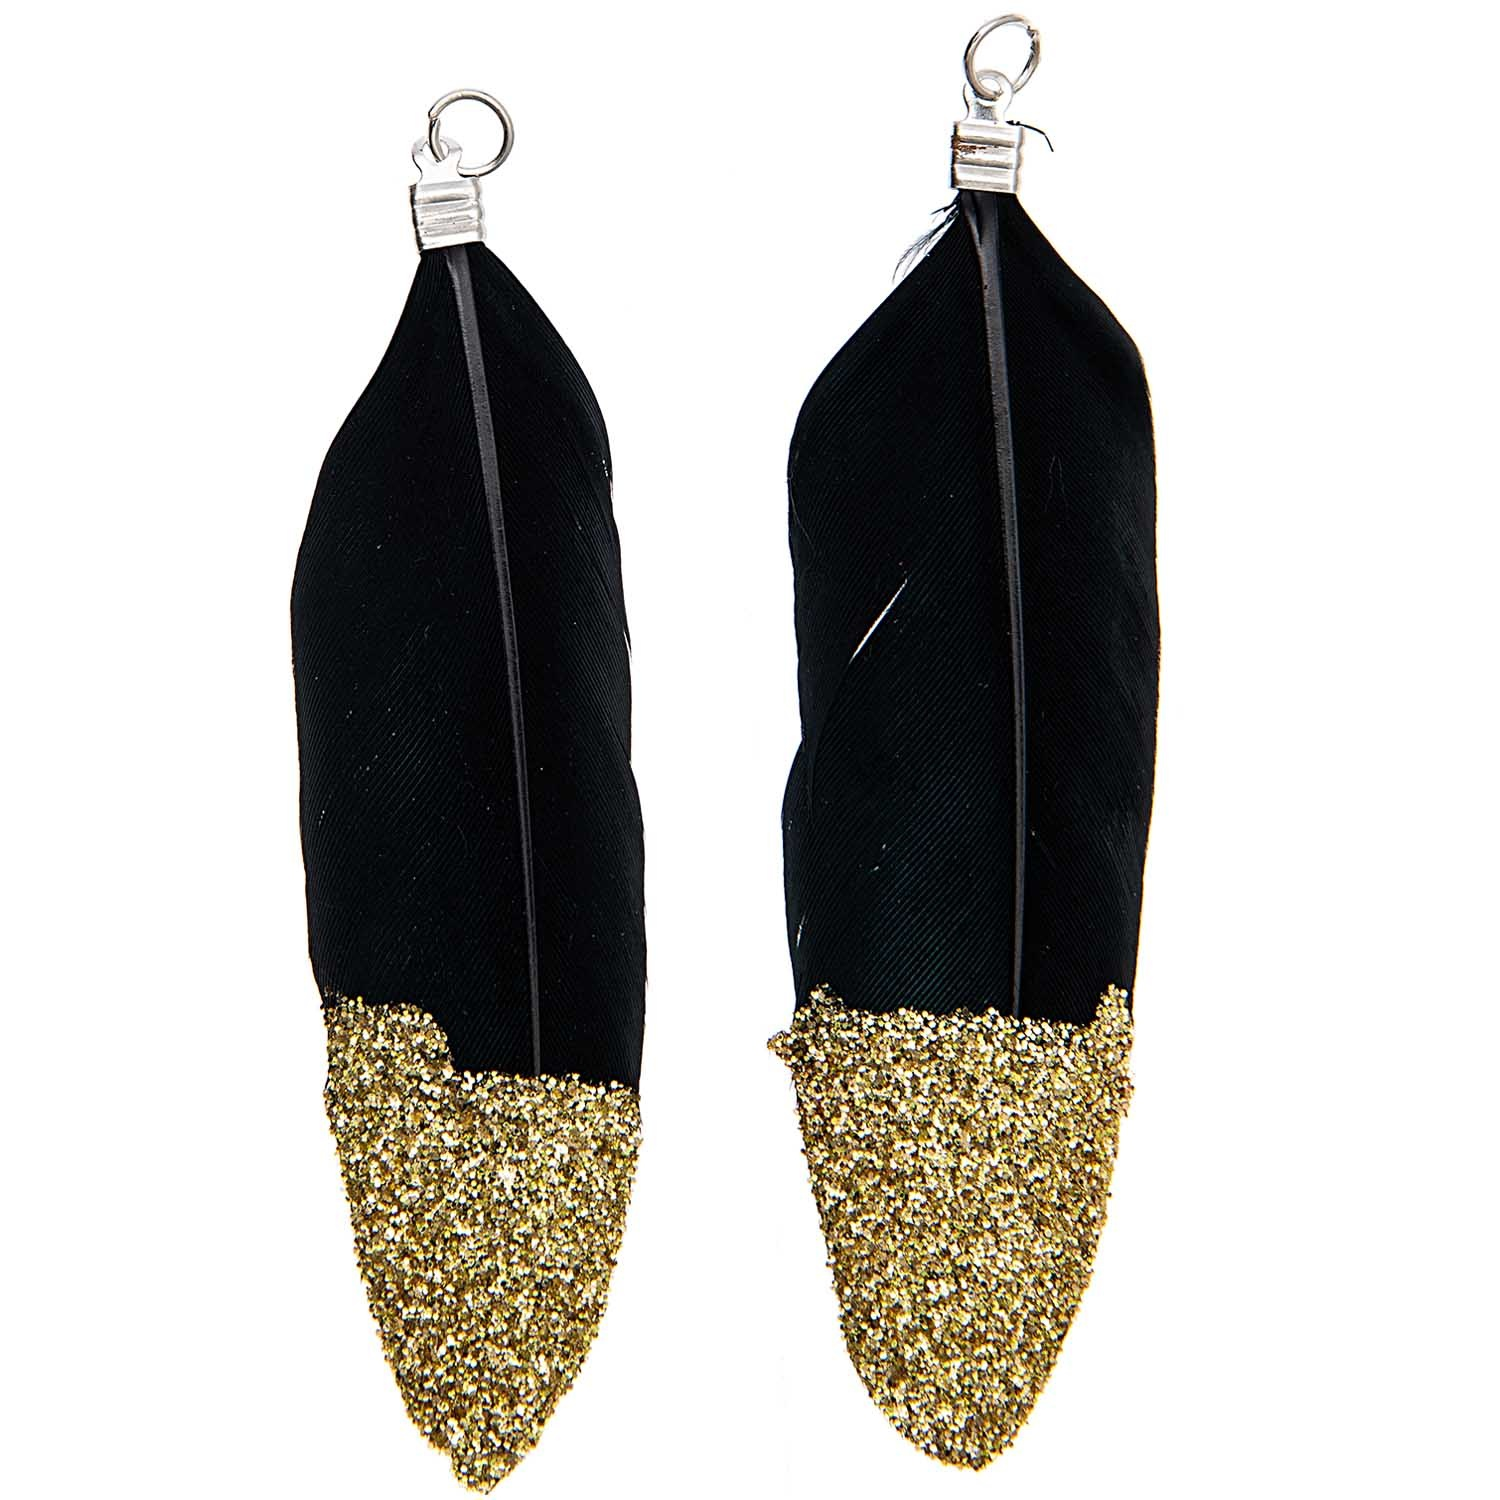 Rico NAY FEATHERS, GLITTER, BLACK/GOLD 2 PCS, WITH SILVER EYELET